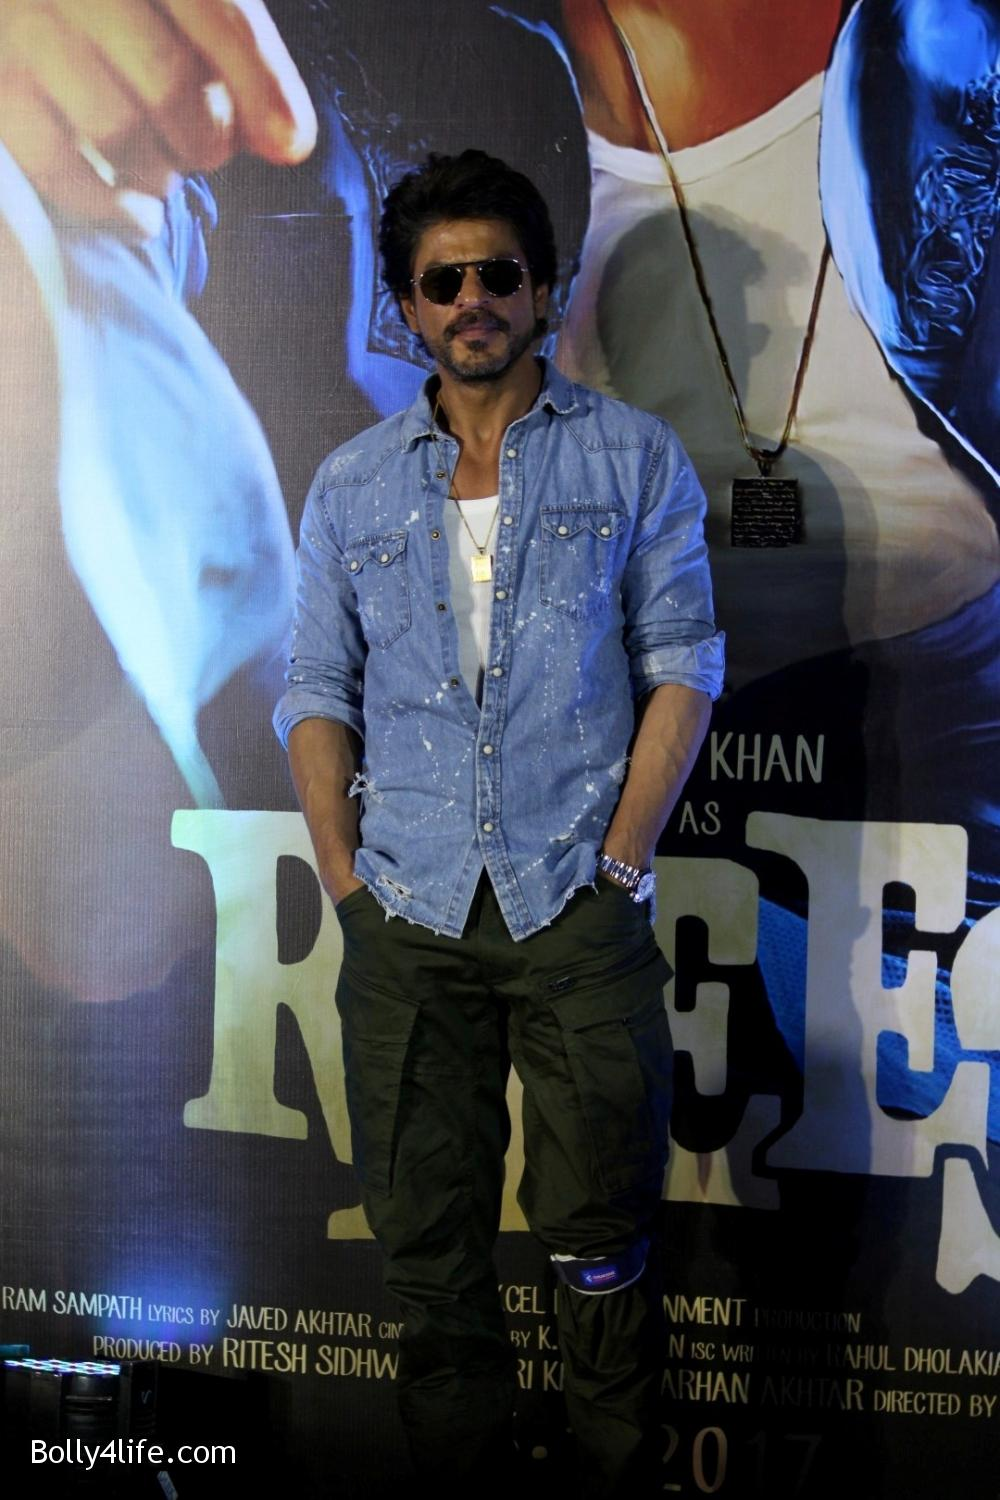 Trailer-launch-of-film-Raees-4.jpg